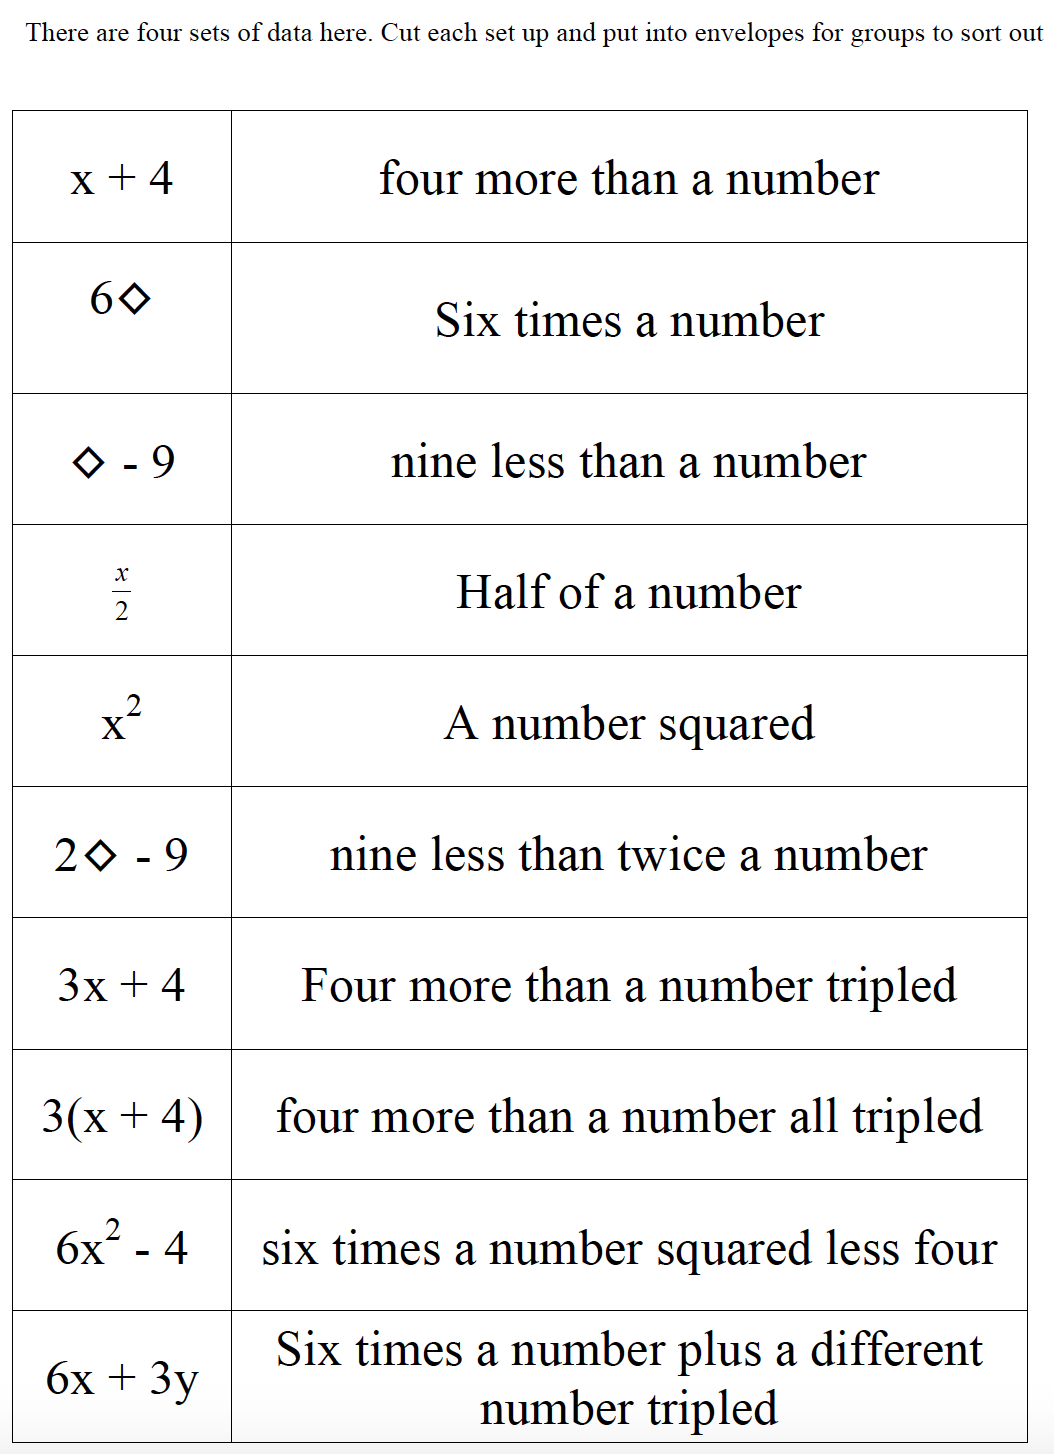 worksheet Translate Algebraic Expressions engaging math connecting words and algebraic expressions there are four sets print each on a different colour card stock is no real reason for this except that if the cards get mixed up it i